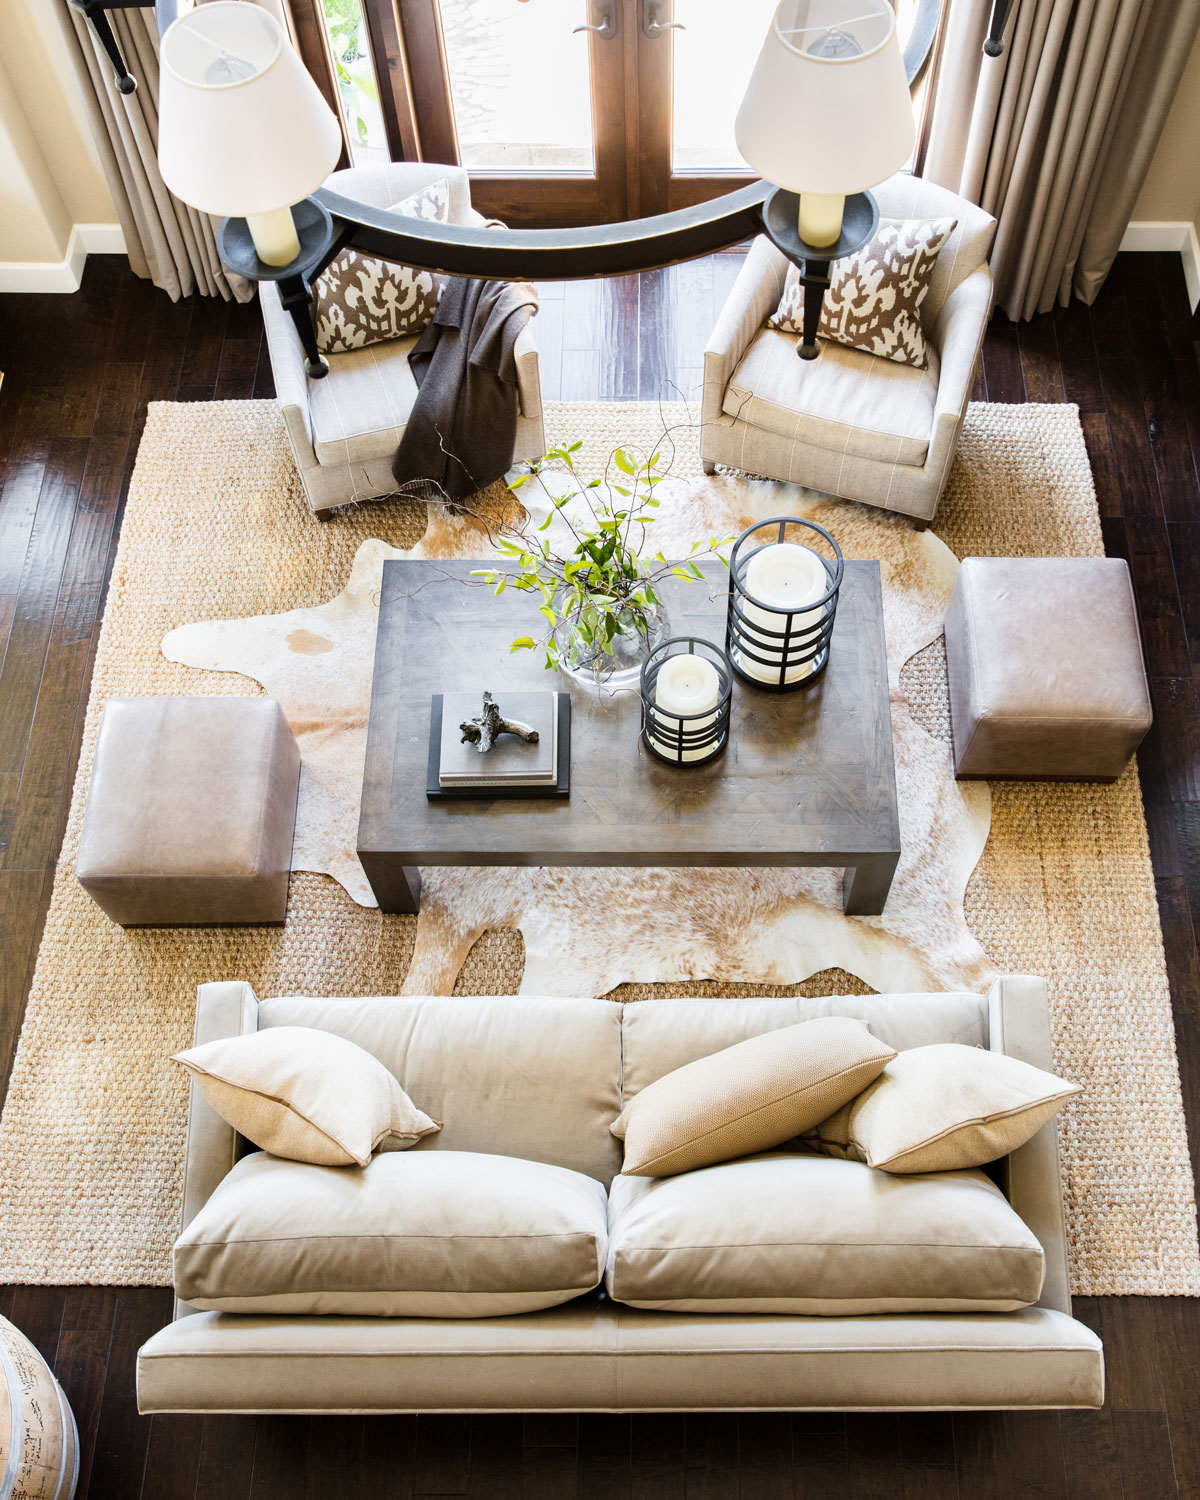 wine country living room clean home dressed in neutrals traditional the gracious is ideal for entertaining two separate seating areas create intimate spaces immediate family to gather but provide easy flow